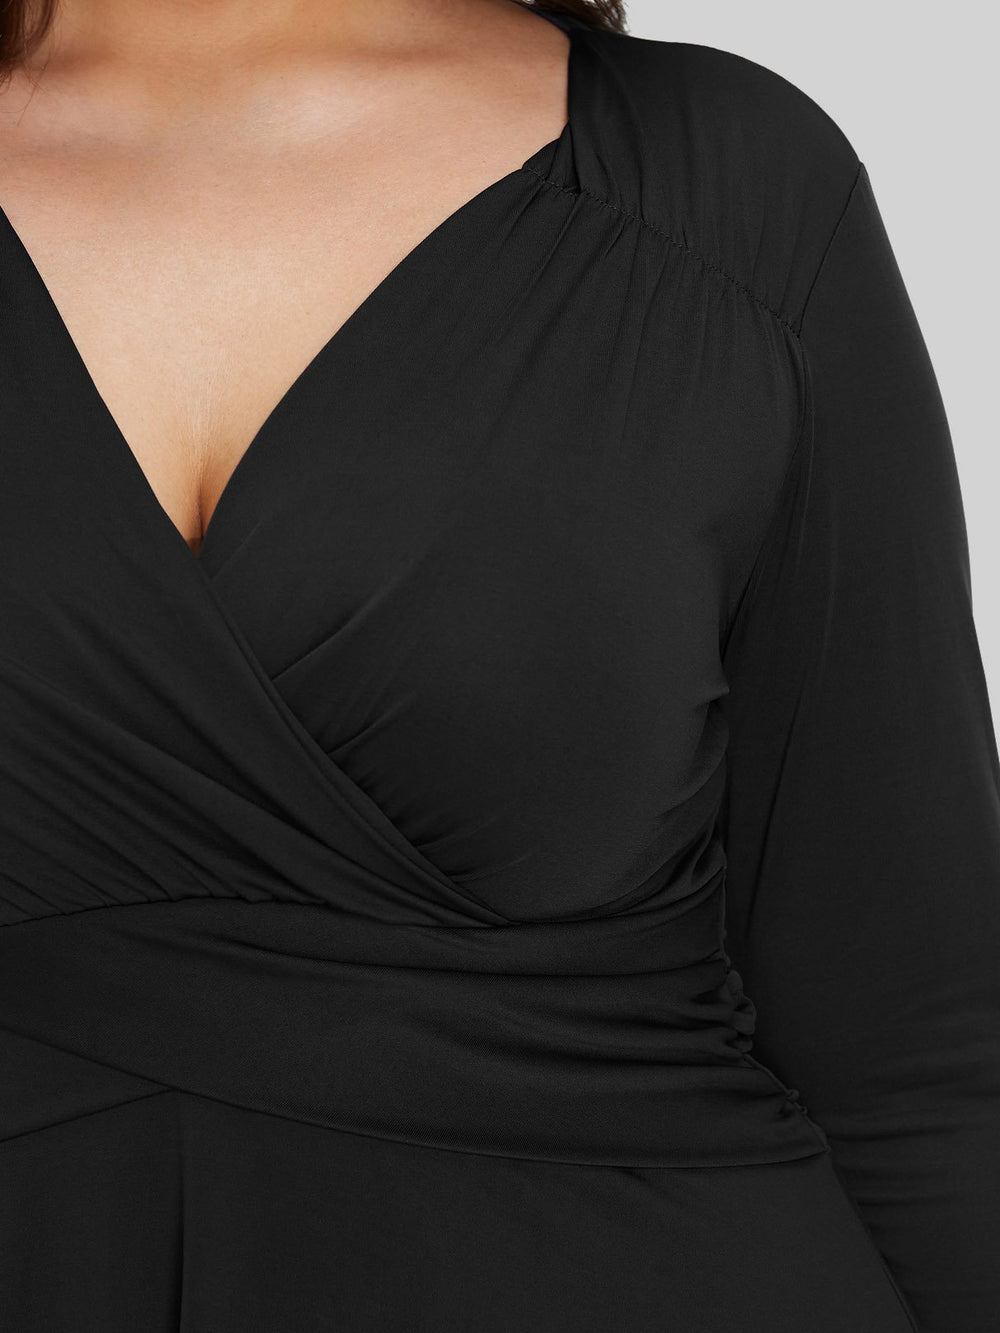 Who Sells Plus Size Prom Dresses